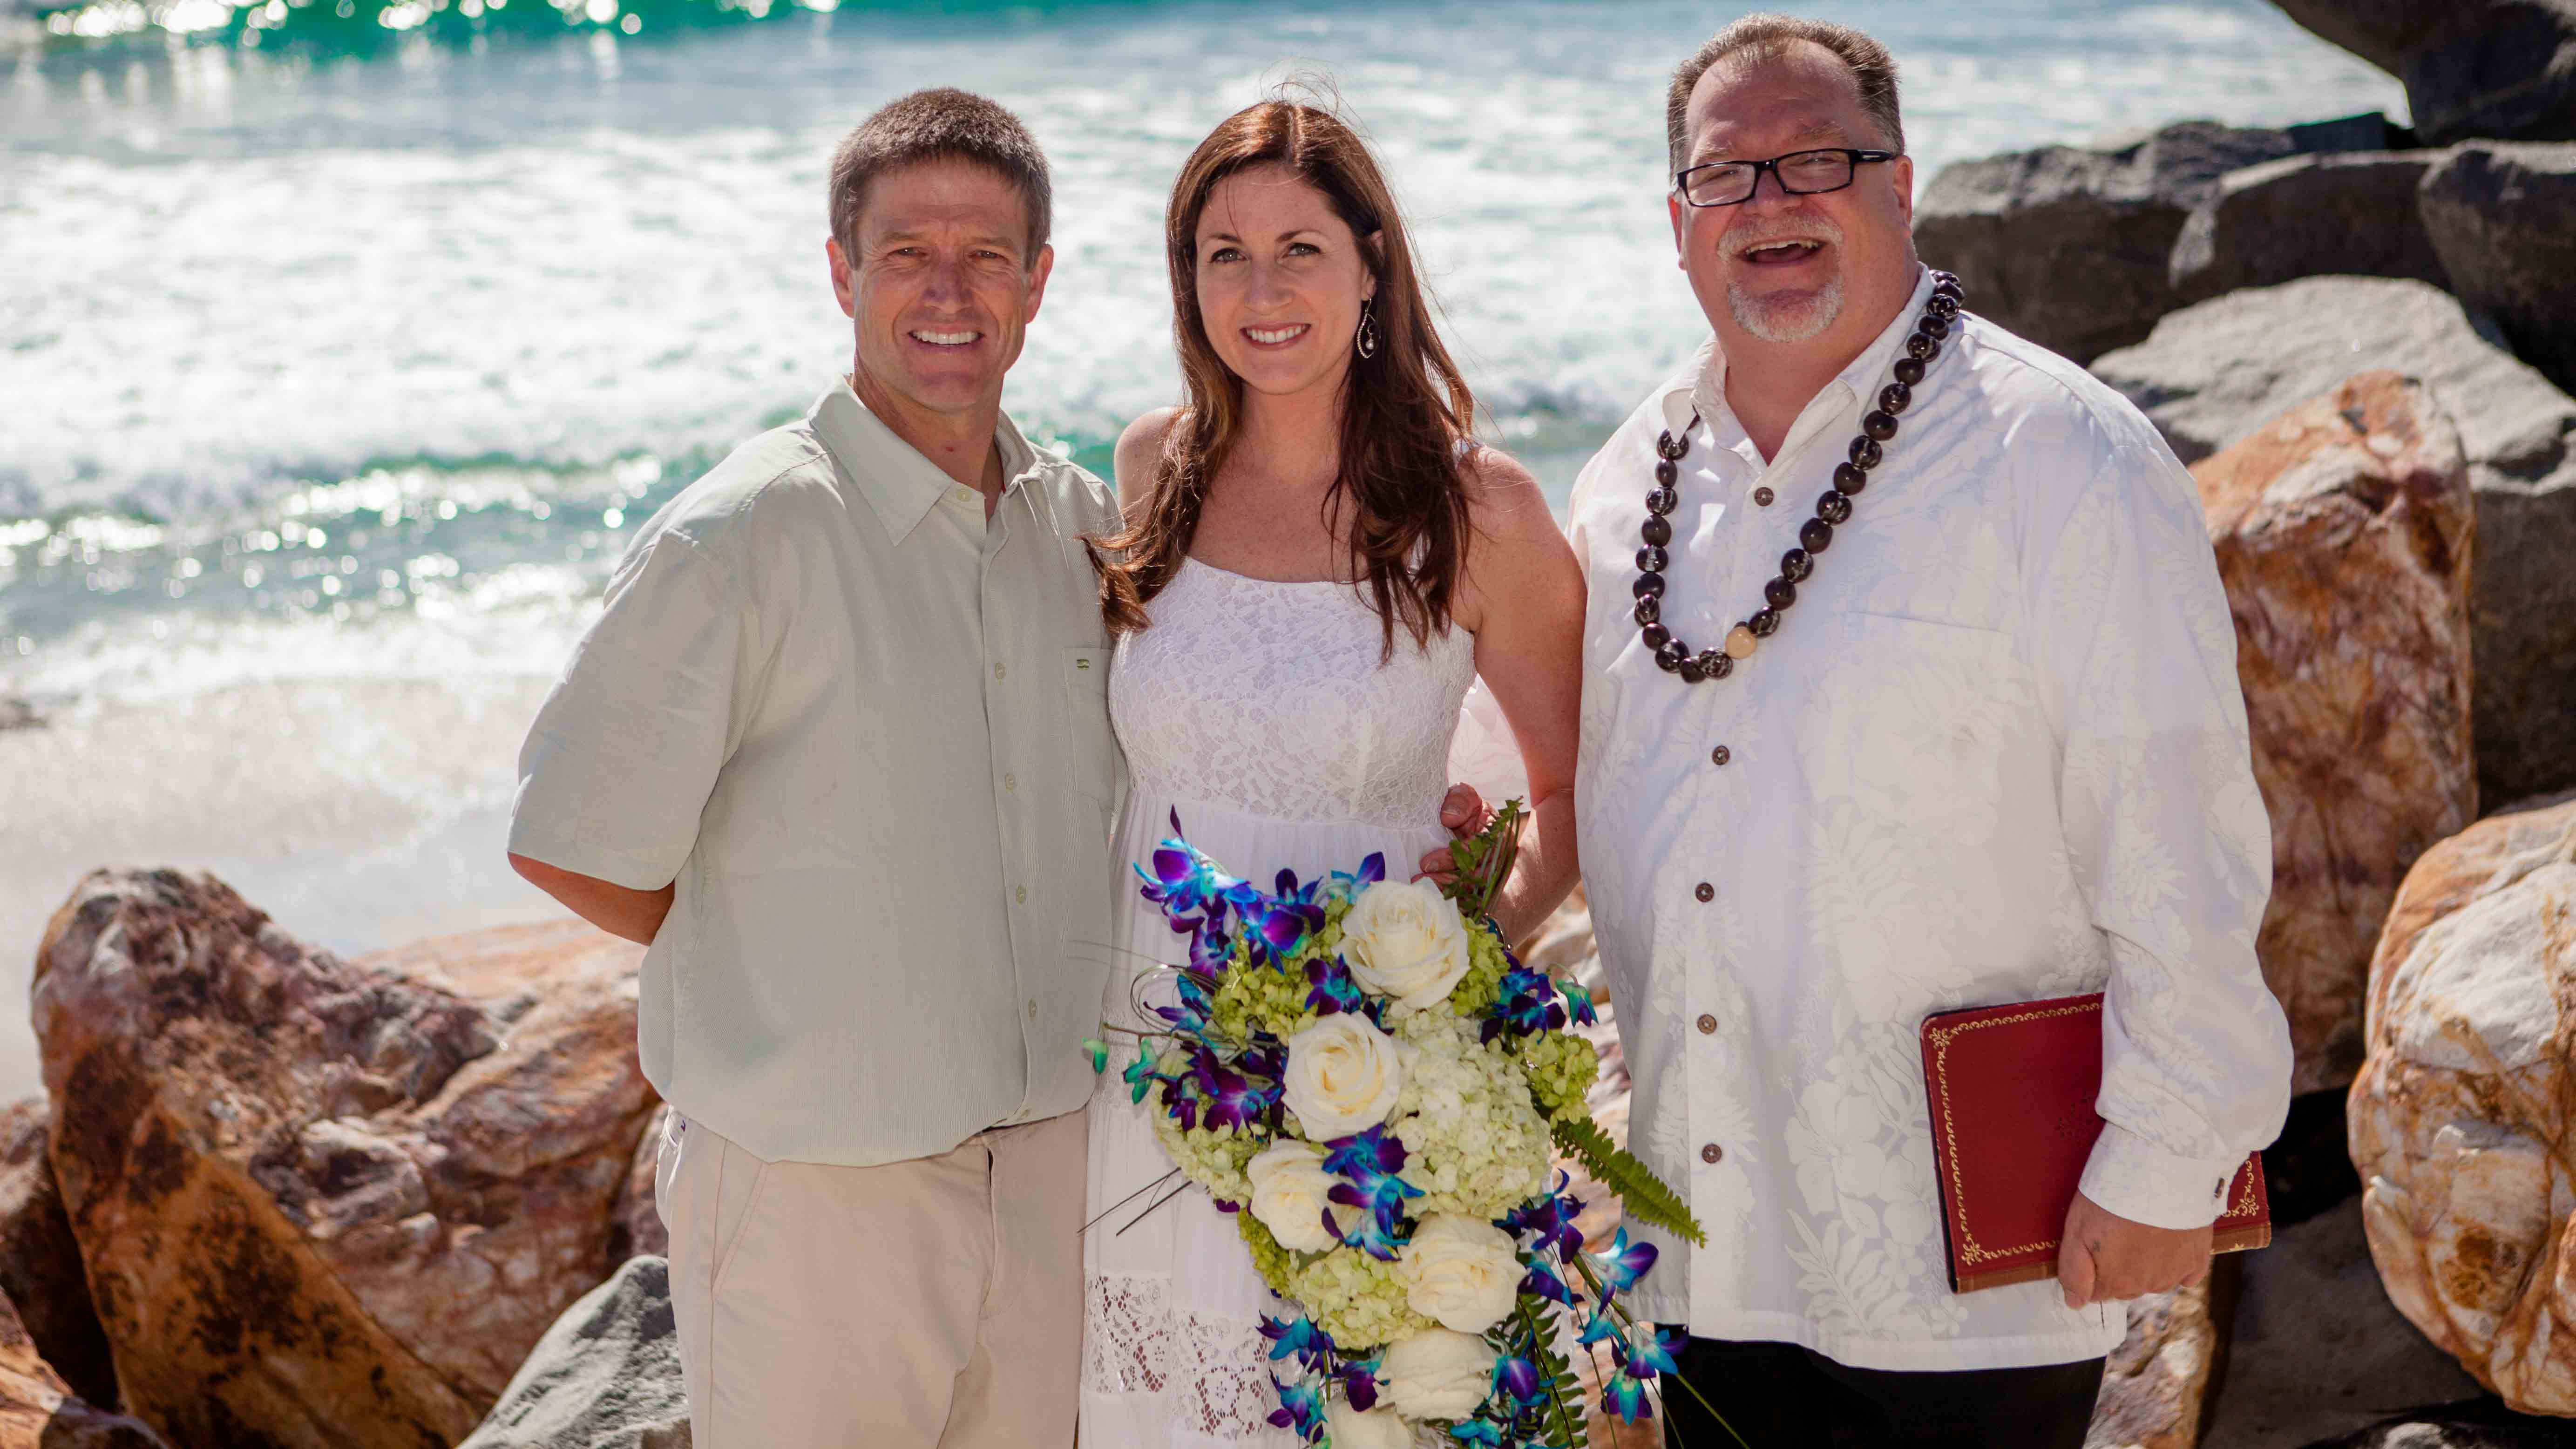 Oceanside Elopement Vows from the Heart